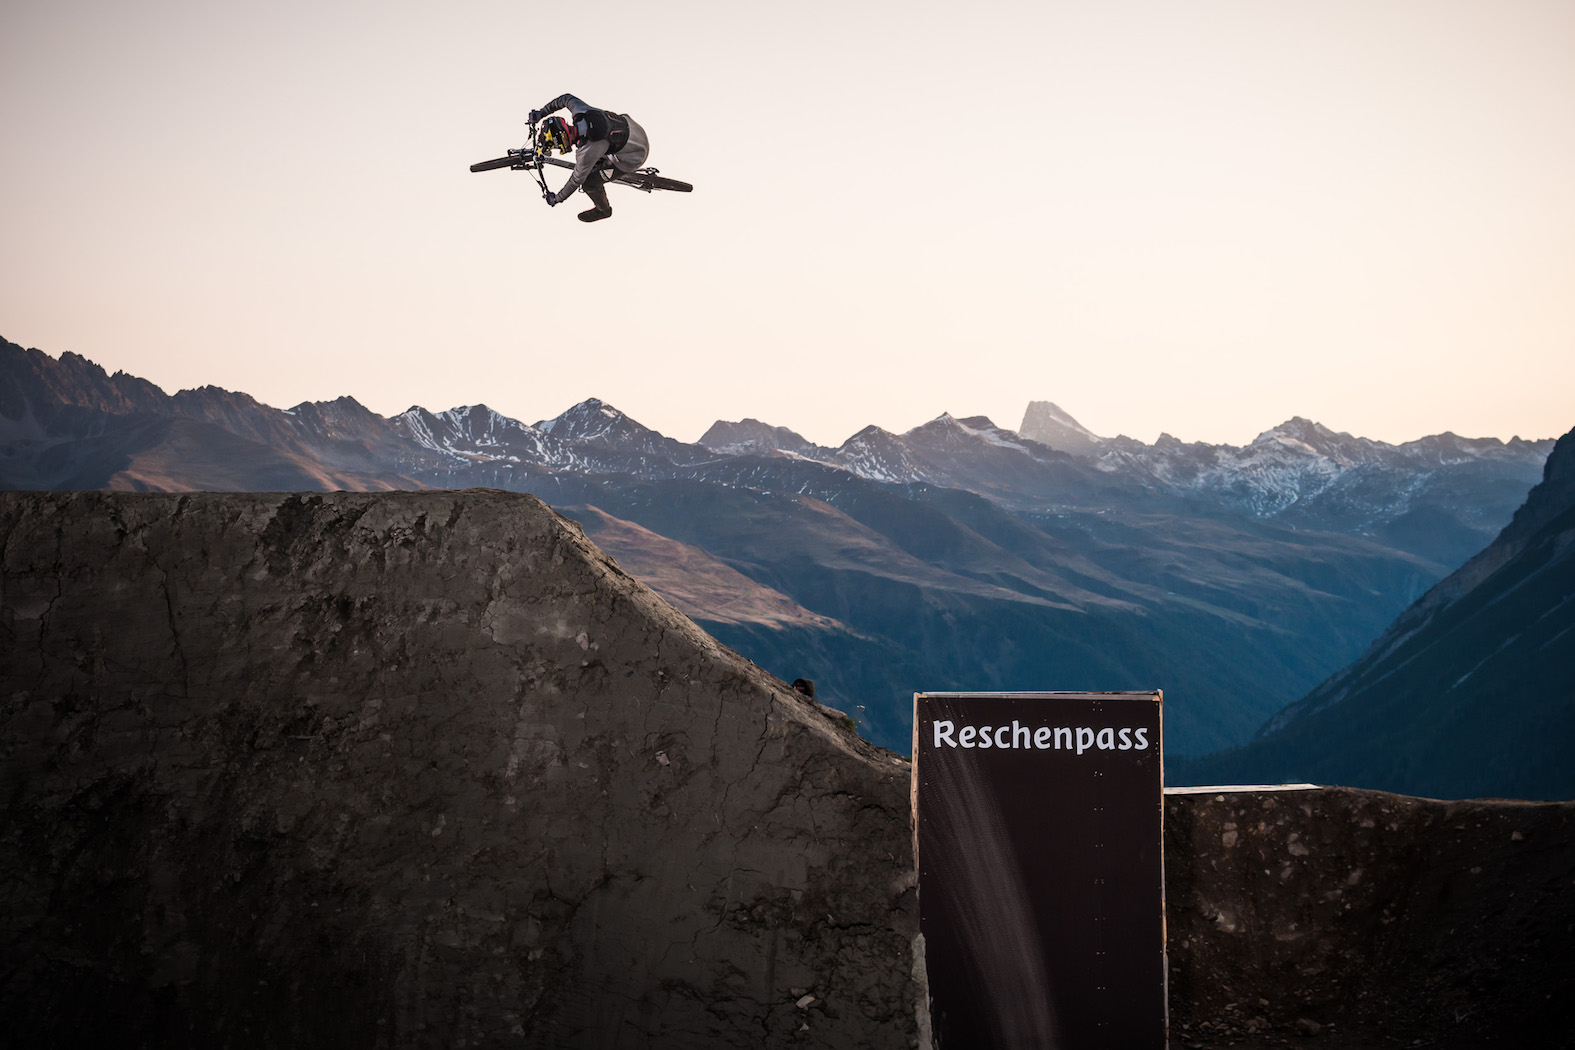 Patrick Schweika with some sick Freeride MTB style at Nine Knights to take Ruler of the Week